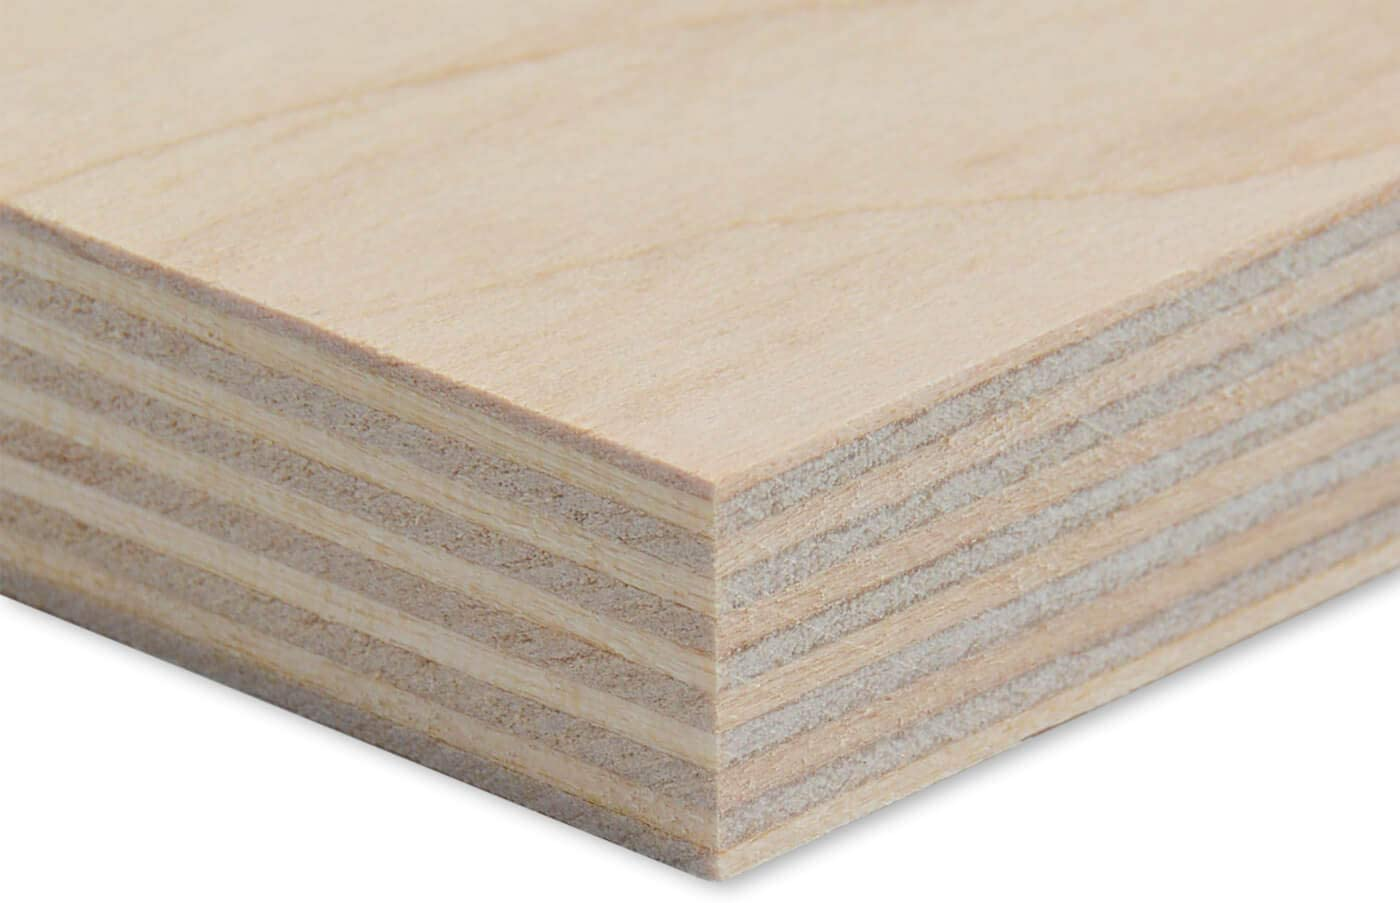 Plywood Sheets Thickness 5 mm Wooden Ply Boards Made of Untreated Birch Wood Multifunctional for Art Creative Craft and DIY Width 40 cm Length 50 cm